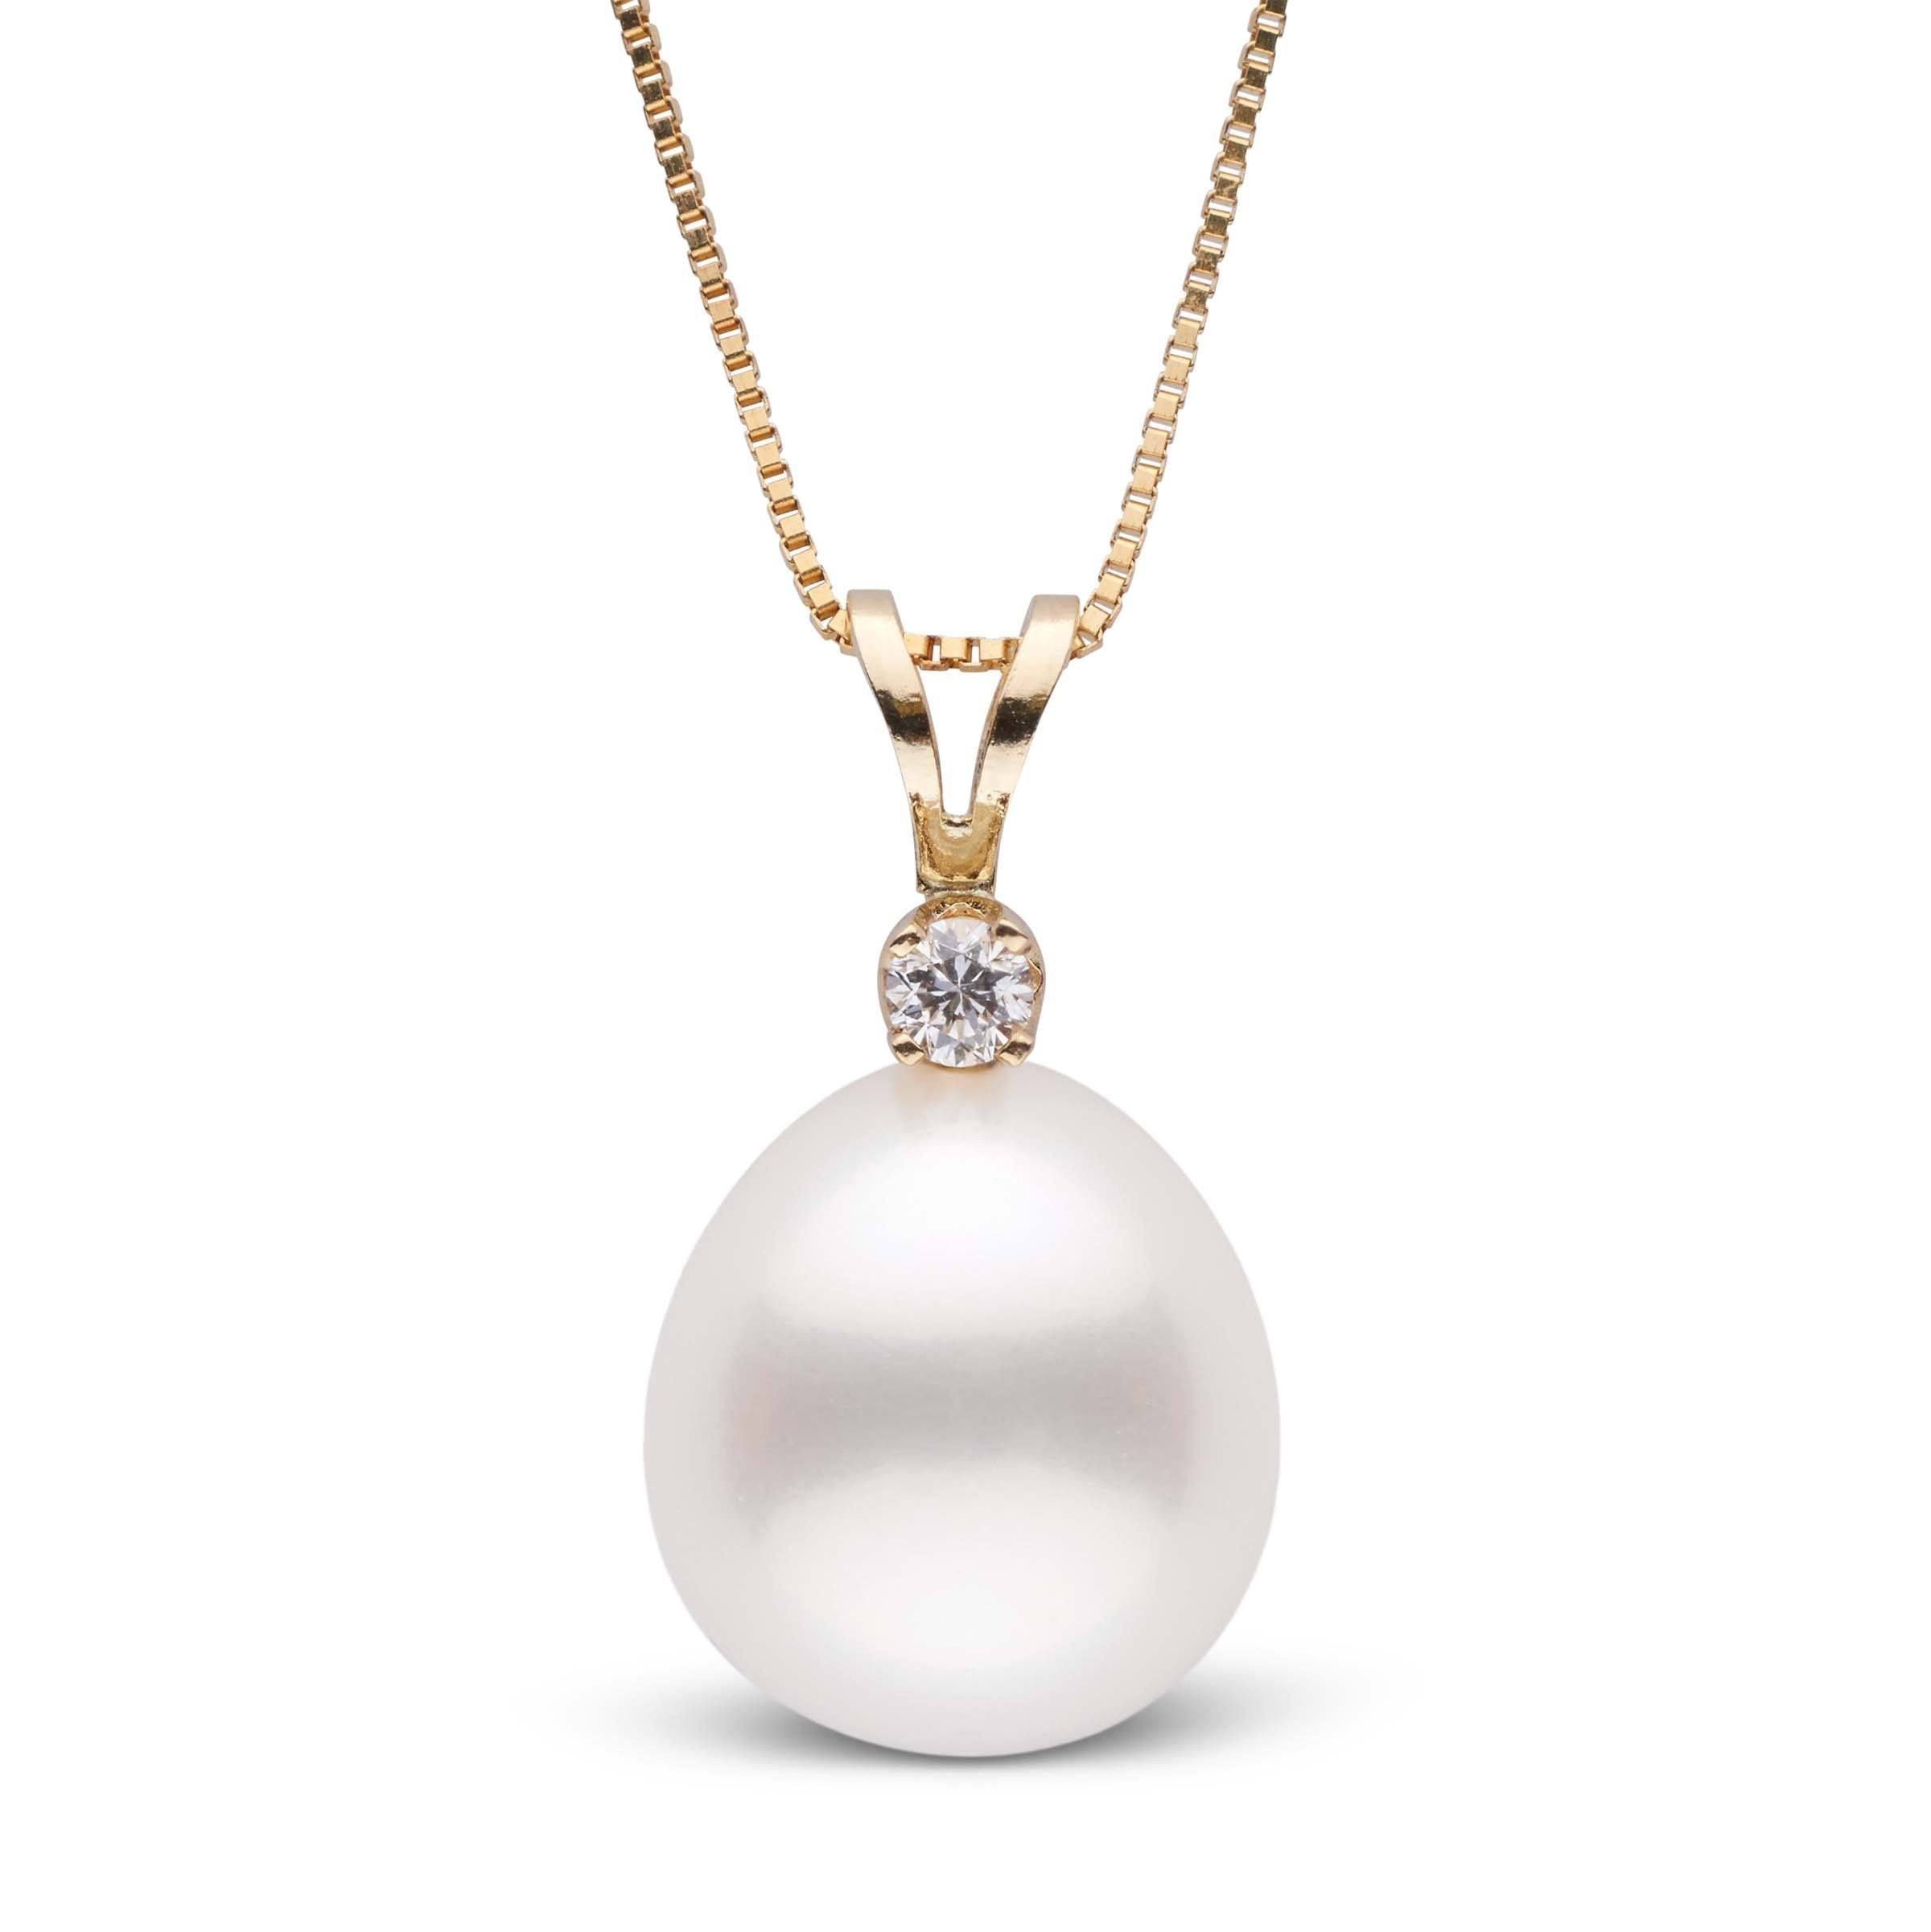 Harmony Collection Drop 11.0-12.0 mm White South Sea Pearl & Diamond Pendant